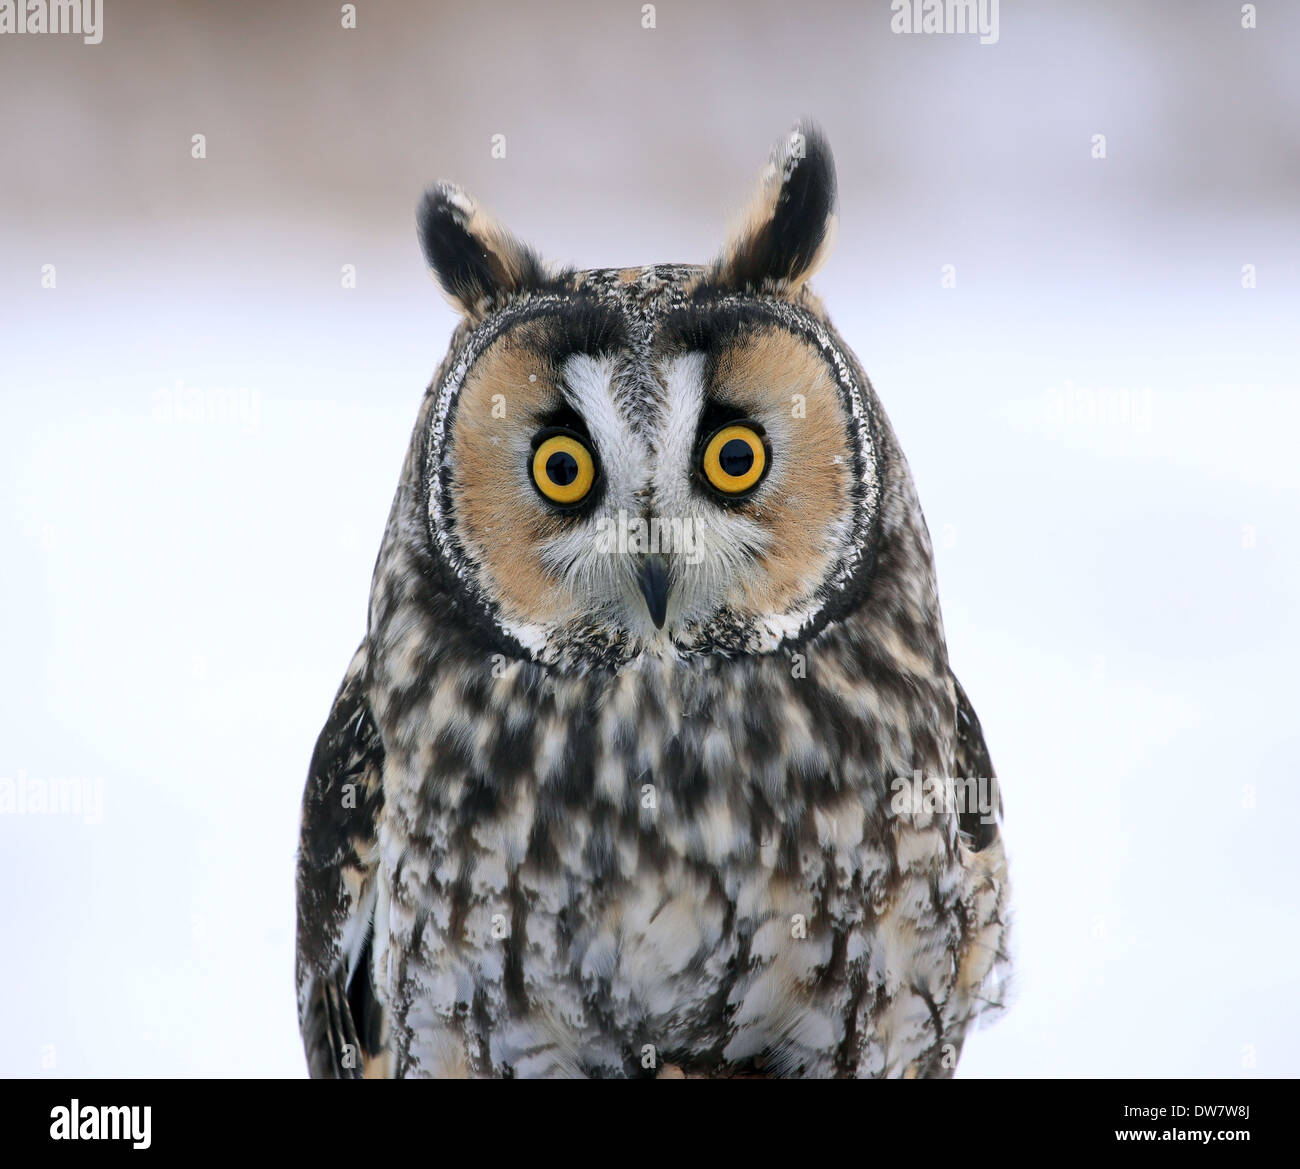 Long-eared Owl Face-to-Face - Stock Image